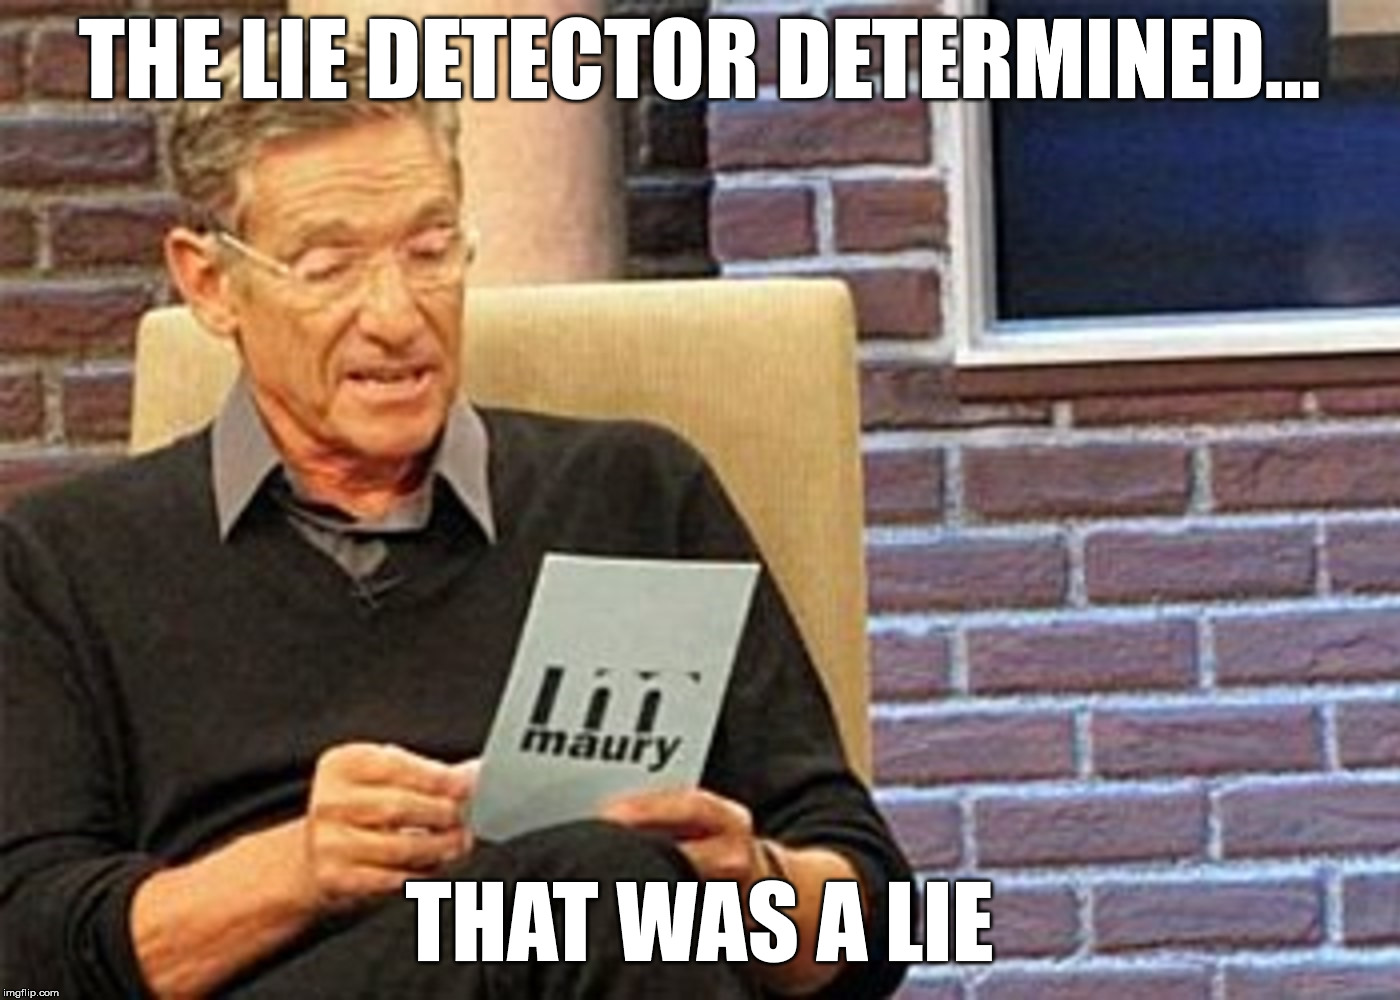 maury povich lie detector results hd | THE LIE DETECTOR DETERMINED... THAT WAS A LIE | image tagged in maury,maury povich,lie,lie detector,results,result | made w/ Imgflip meme maker